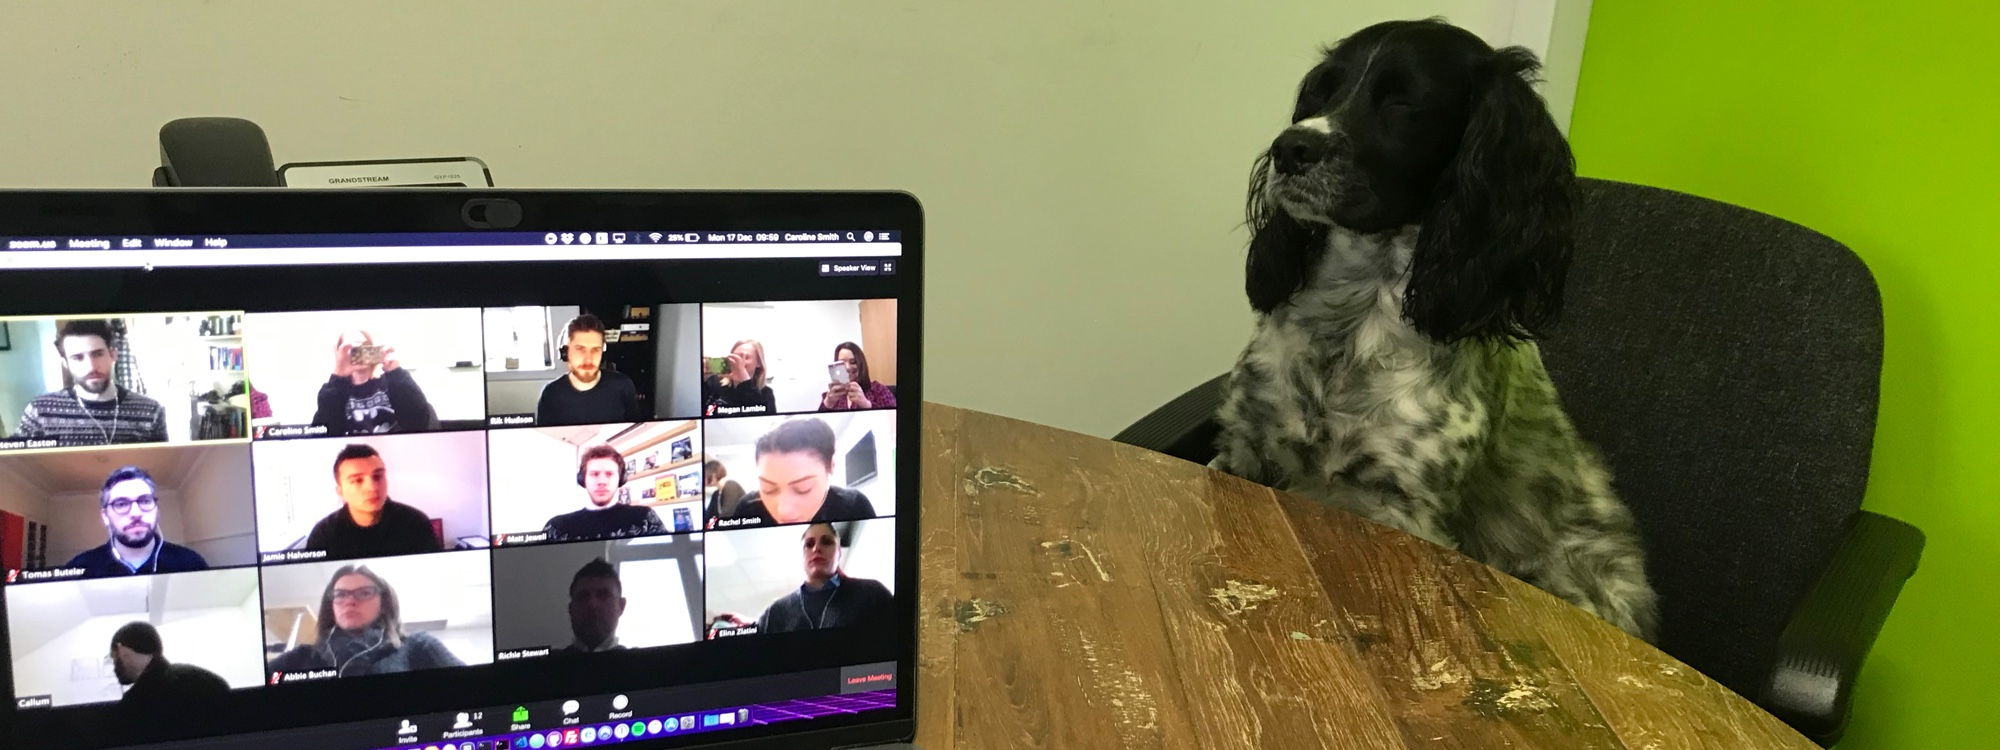 A laptop on a desk with a dog sitting on a seat watching the screen.